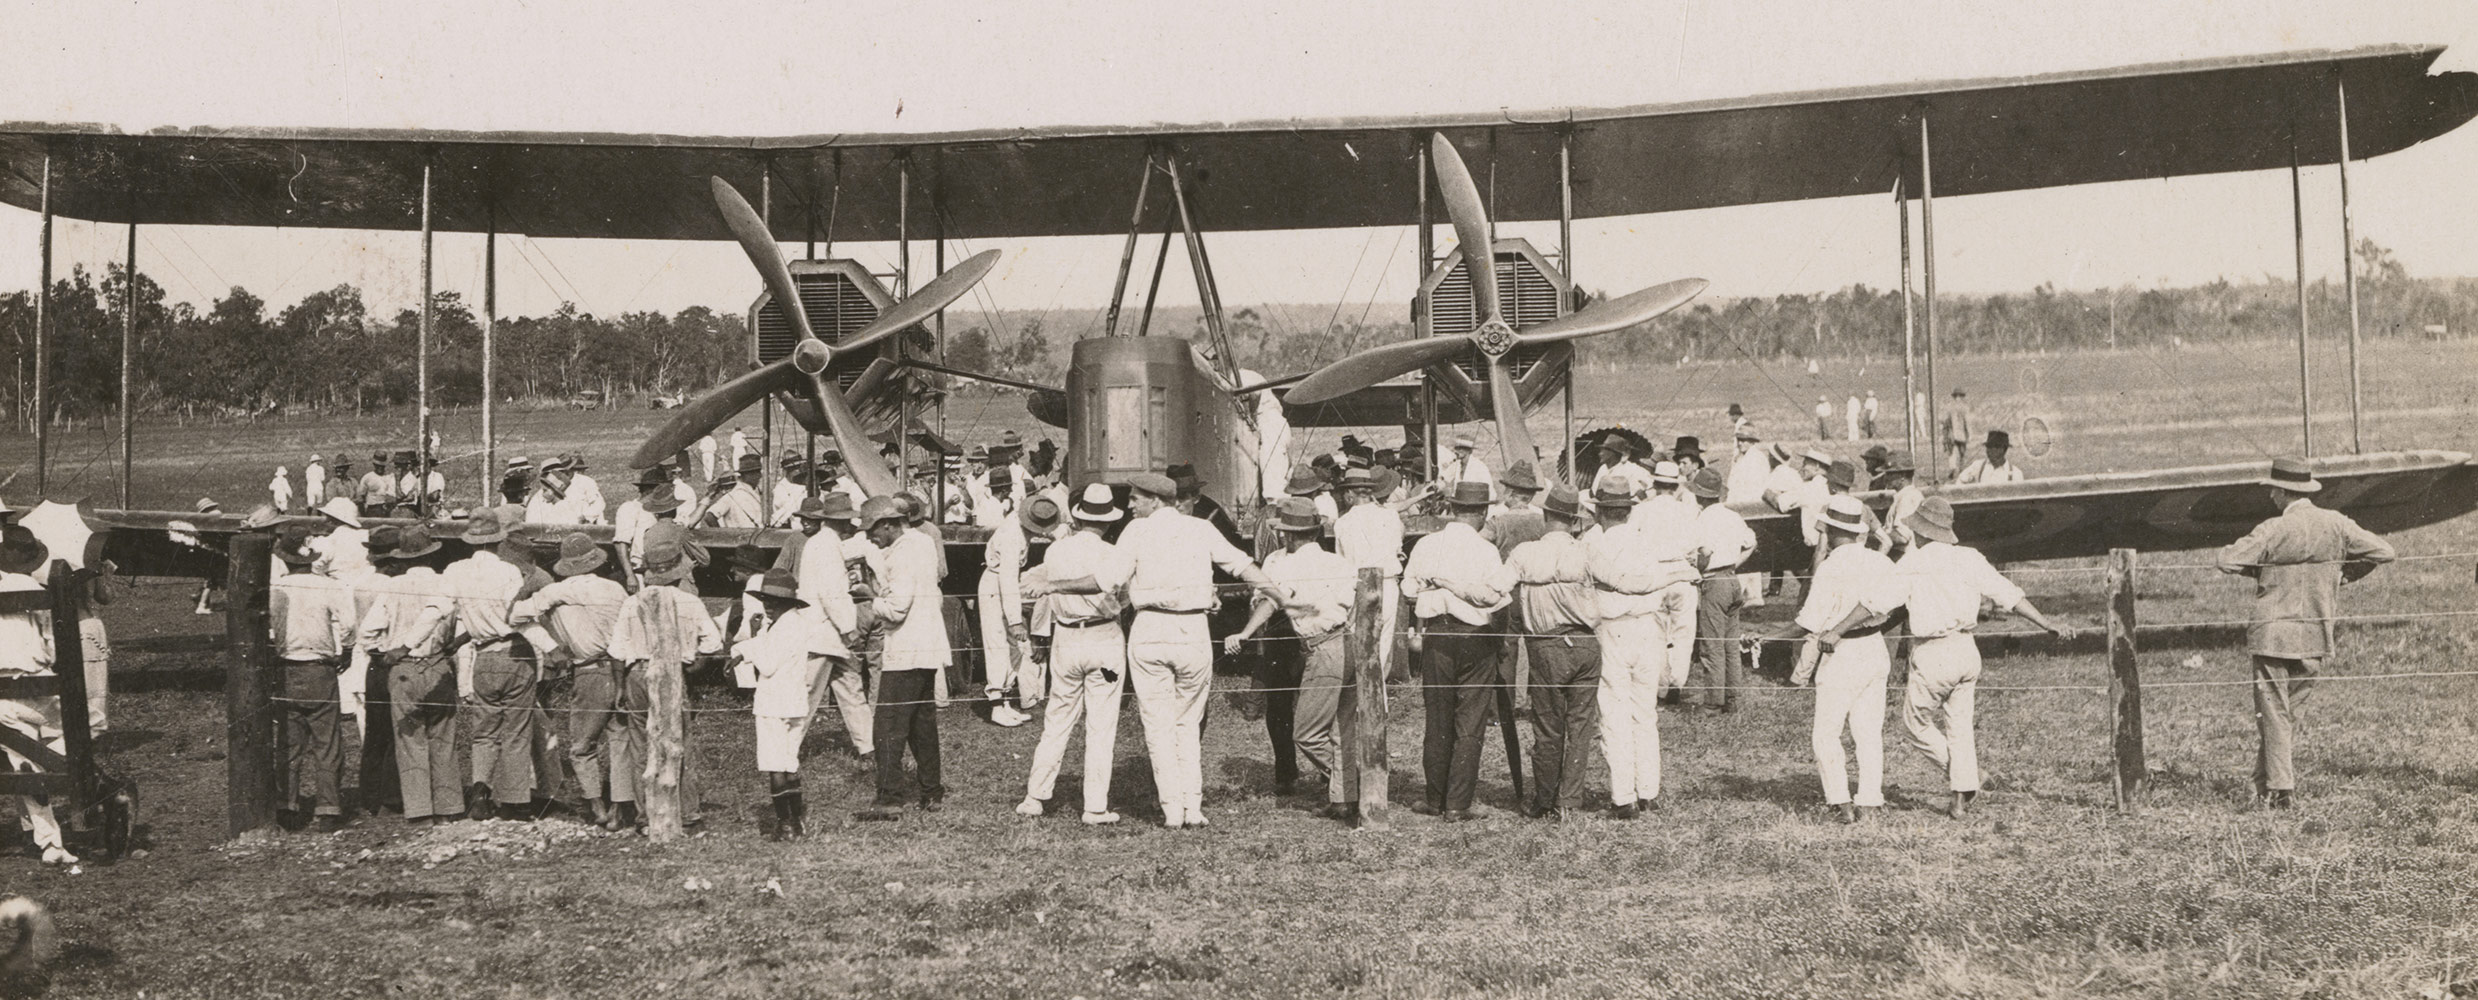 The Great Air Race of 1919 – 100 years on